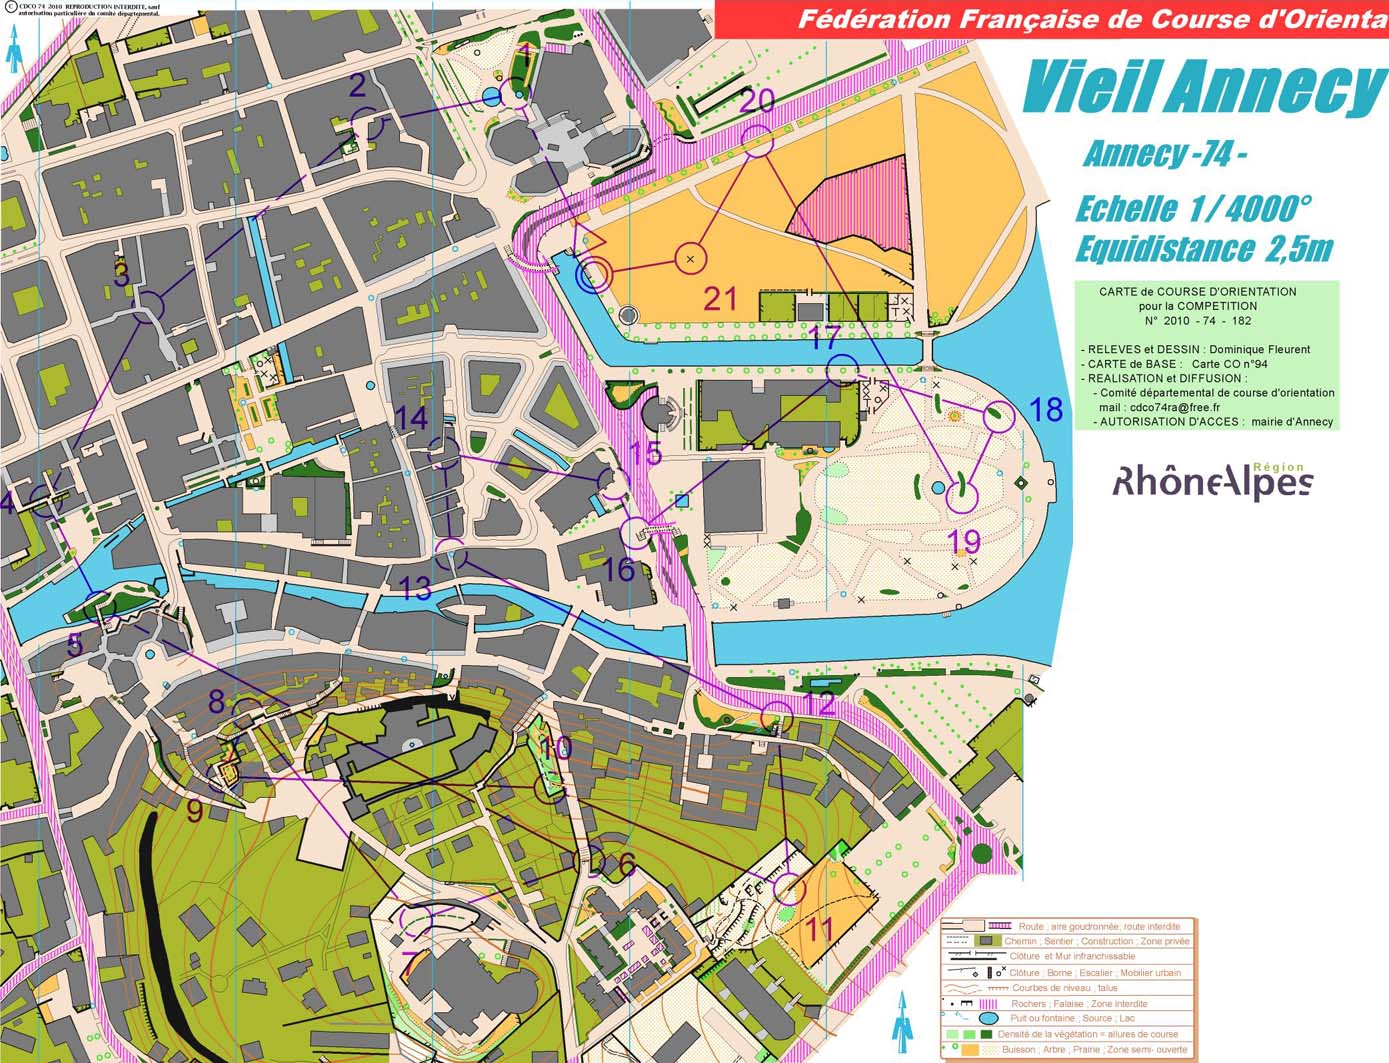 WOC 2011 training Sprint Qual (05-07-2011)